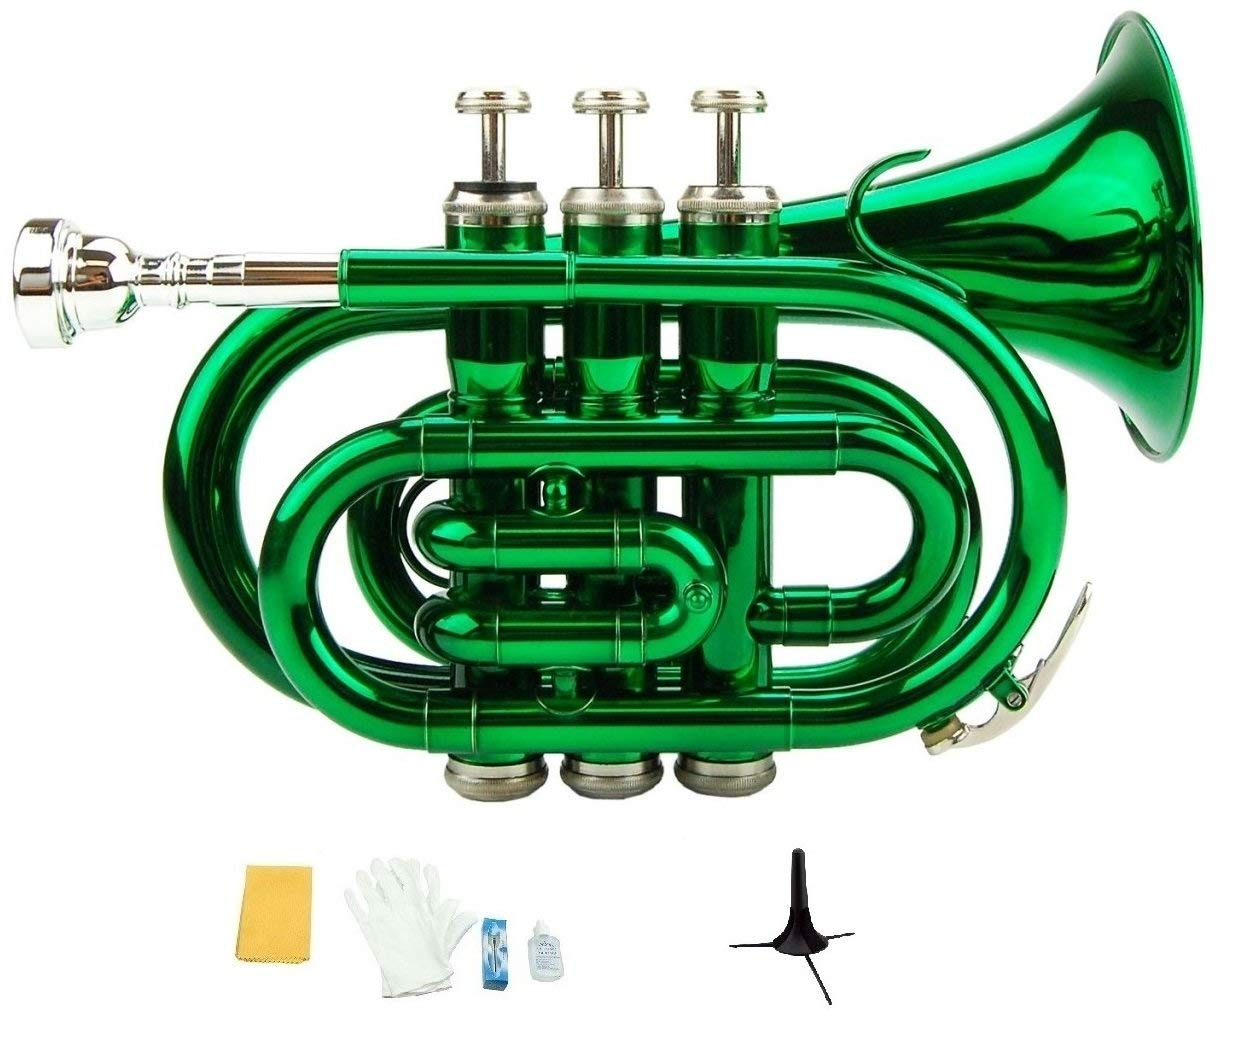 Merano B Flat Green Pocket Trumpet with Case+Mouth Piece;Valve oil;A Pair Of Gloves;Soft Cleaning Cloth+Stand by Merano